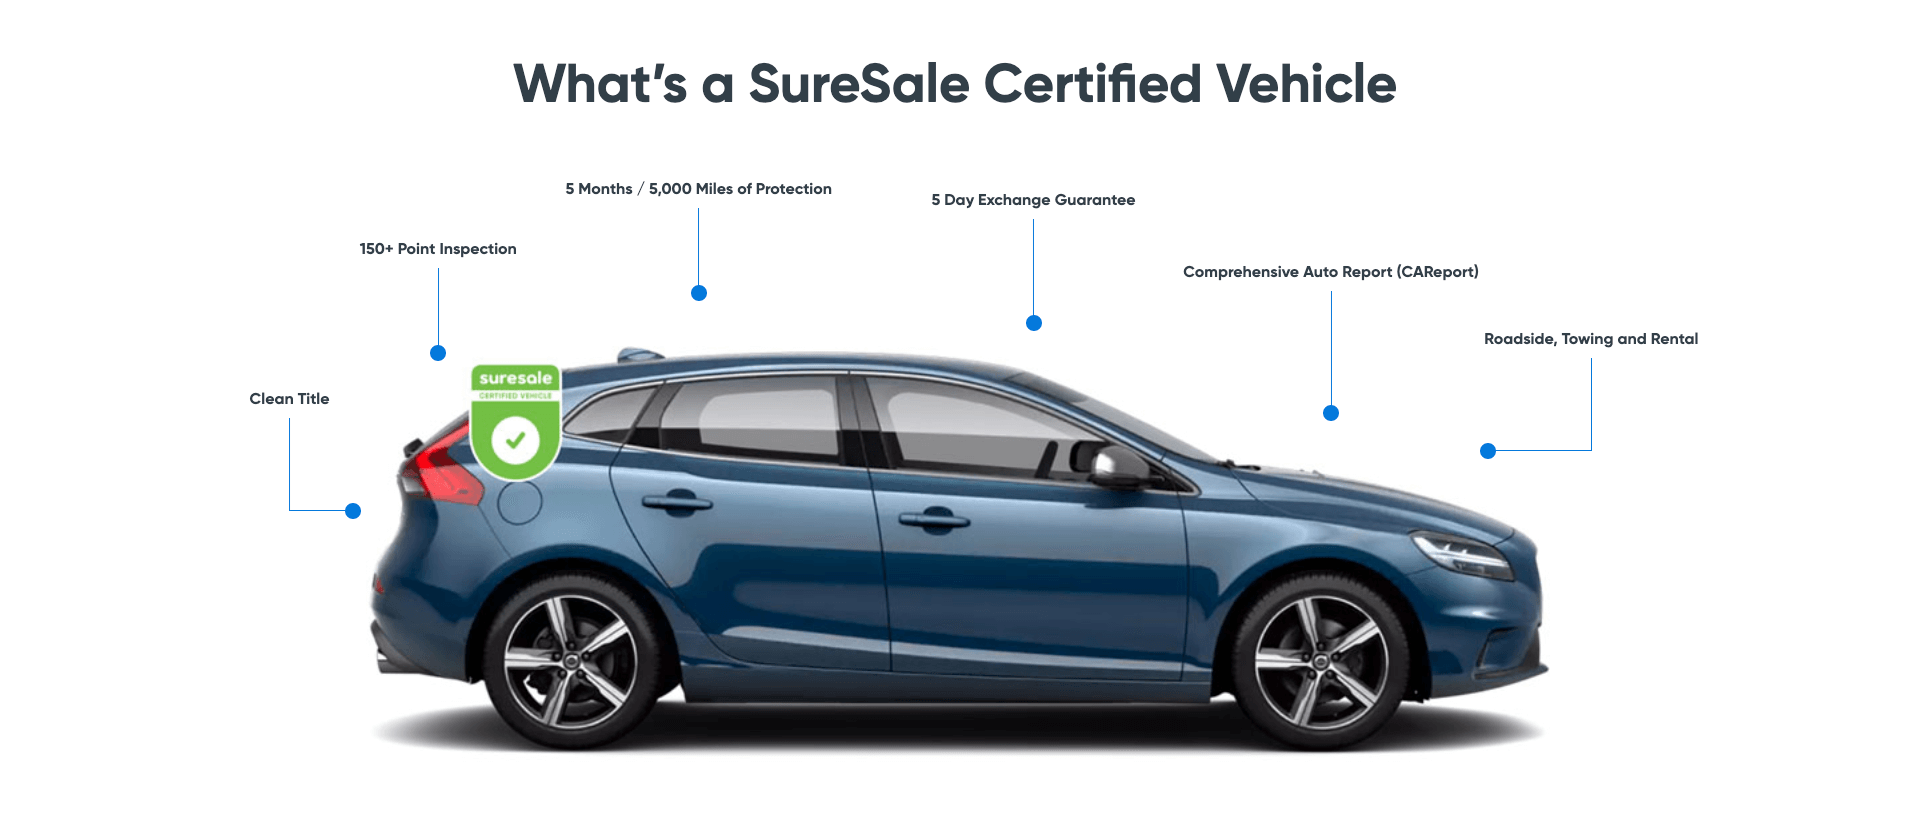 What is SureSale